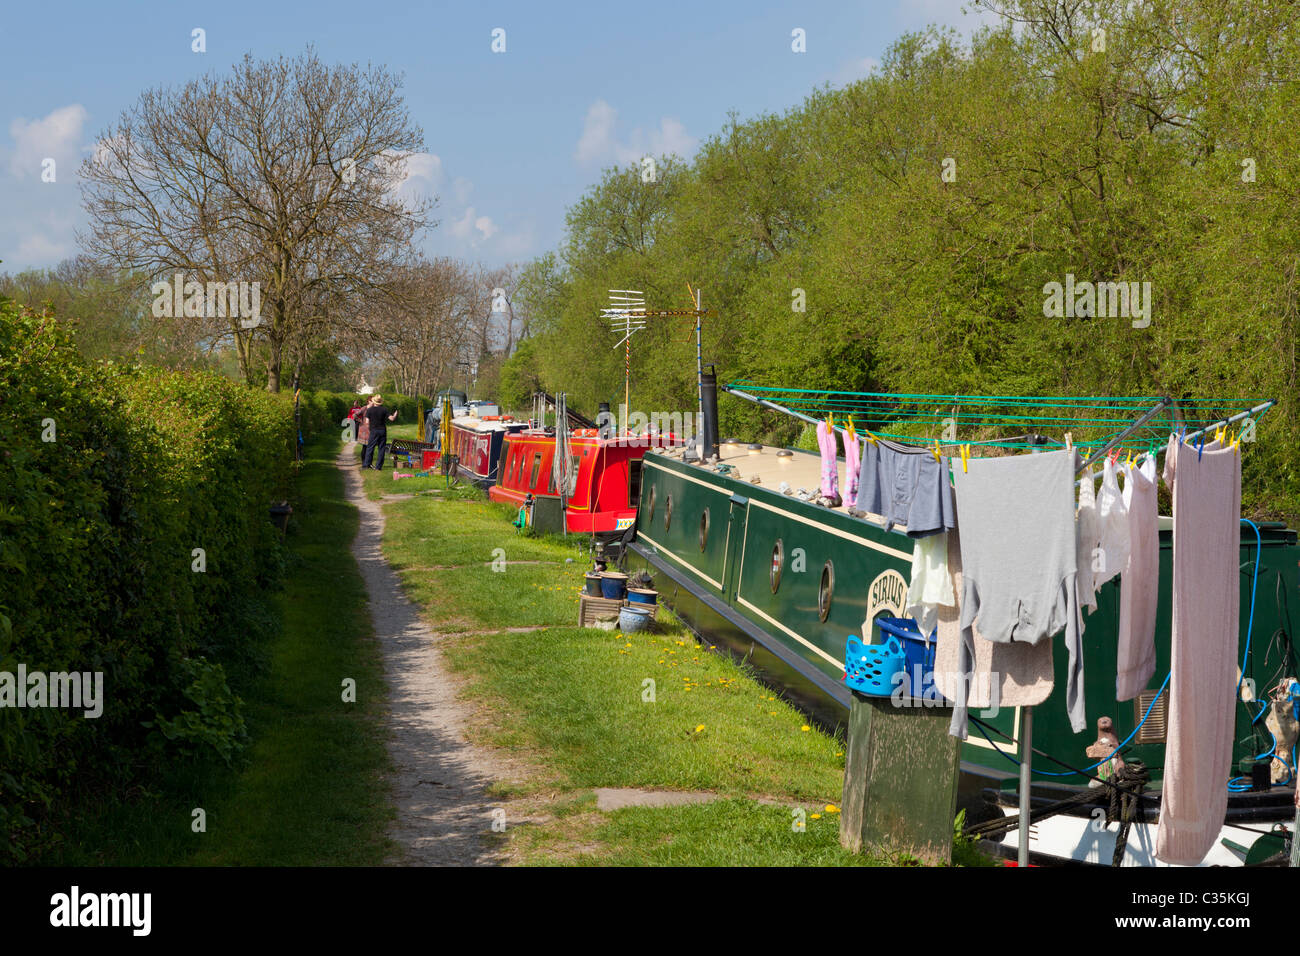 Narrowboats moored on the Trent and Mersey canal near Shardlow Derbyshire England GB UK EU Europe - Stock Image